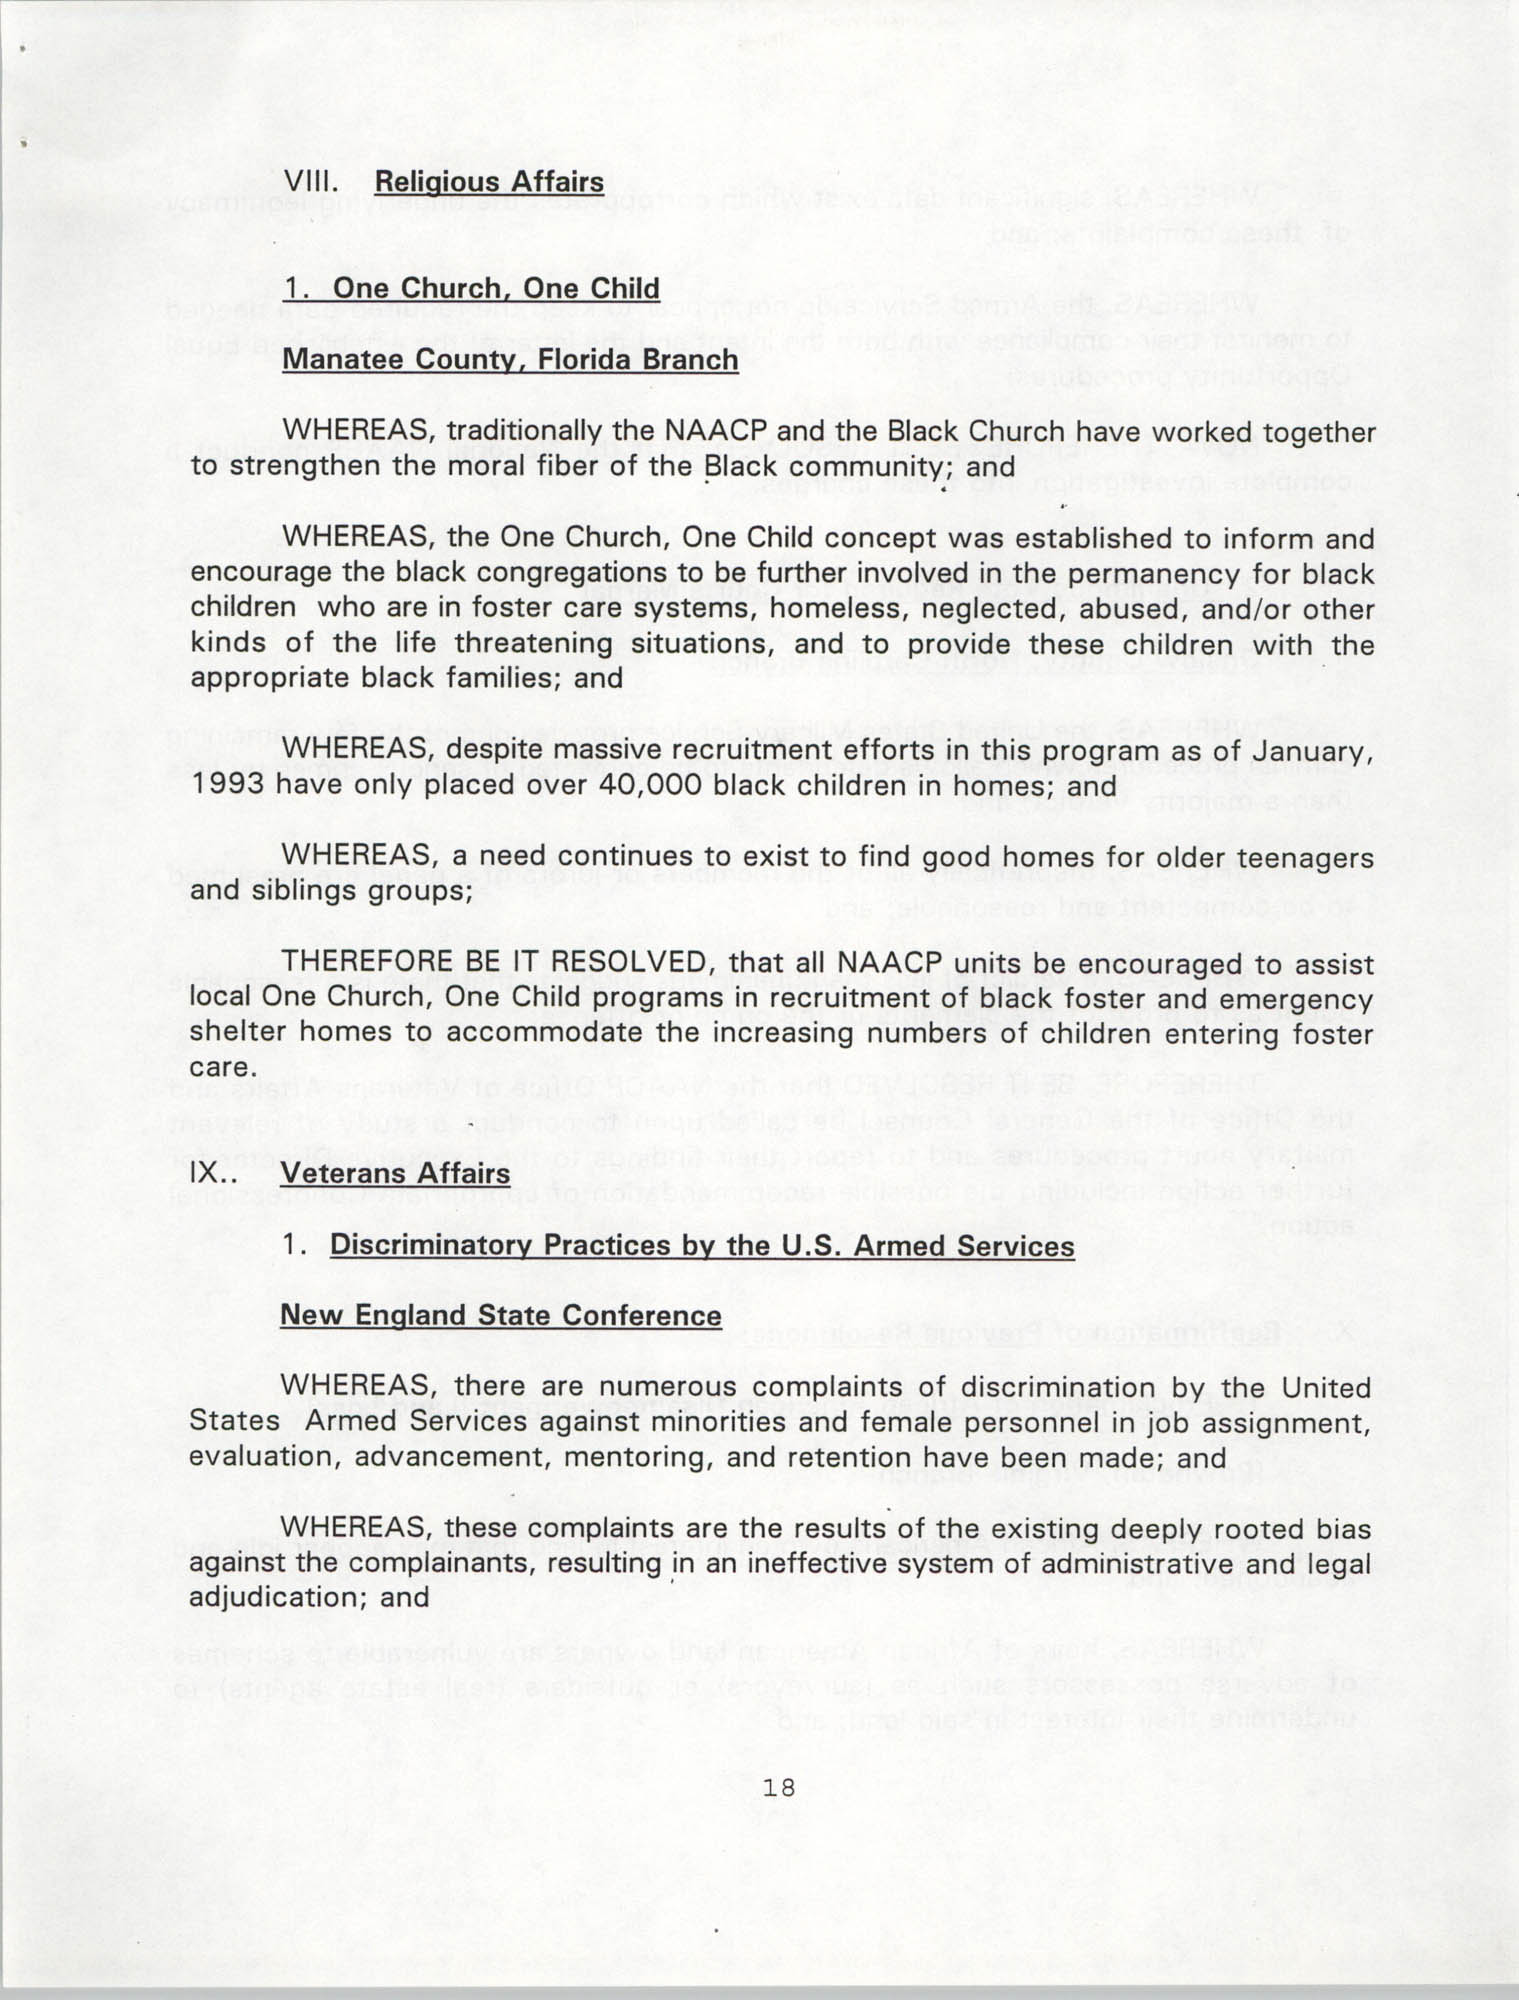 Resolutions Submitted Under Article X, Section 2 of the Constitution of the NAACP, 1994, Page 18